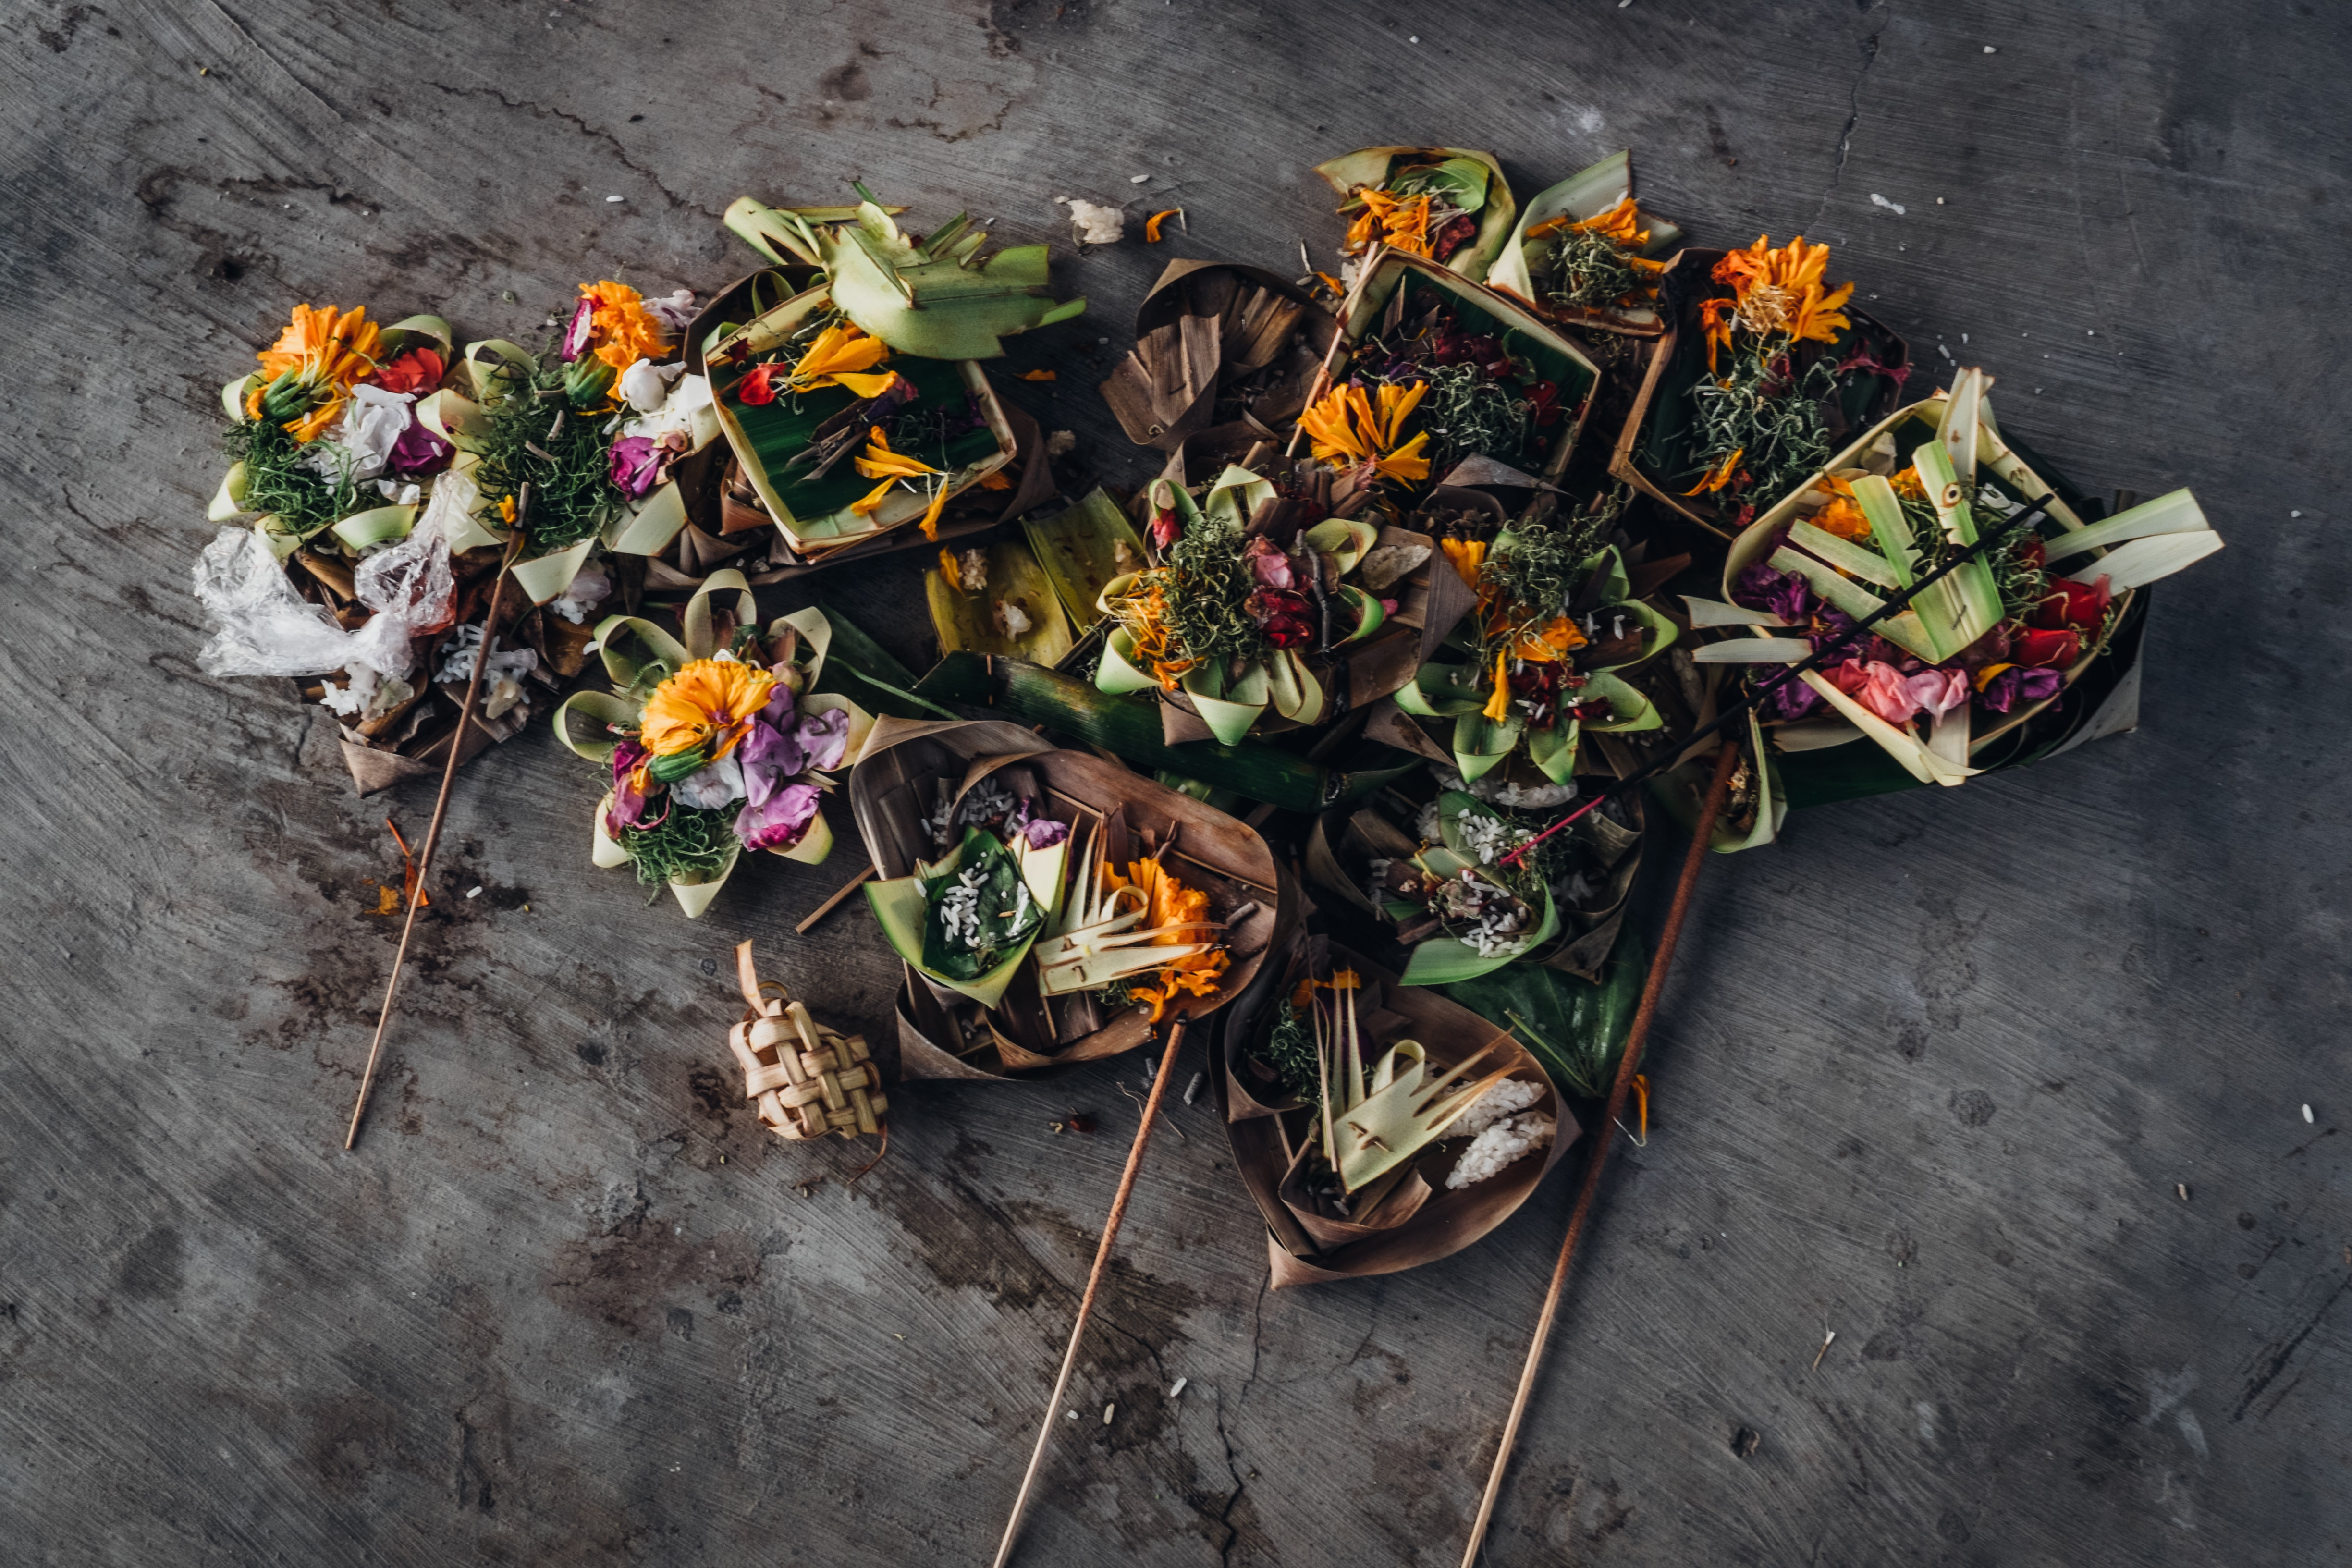 An overhead shot of floral decoration with dry petals and leaves